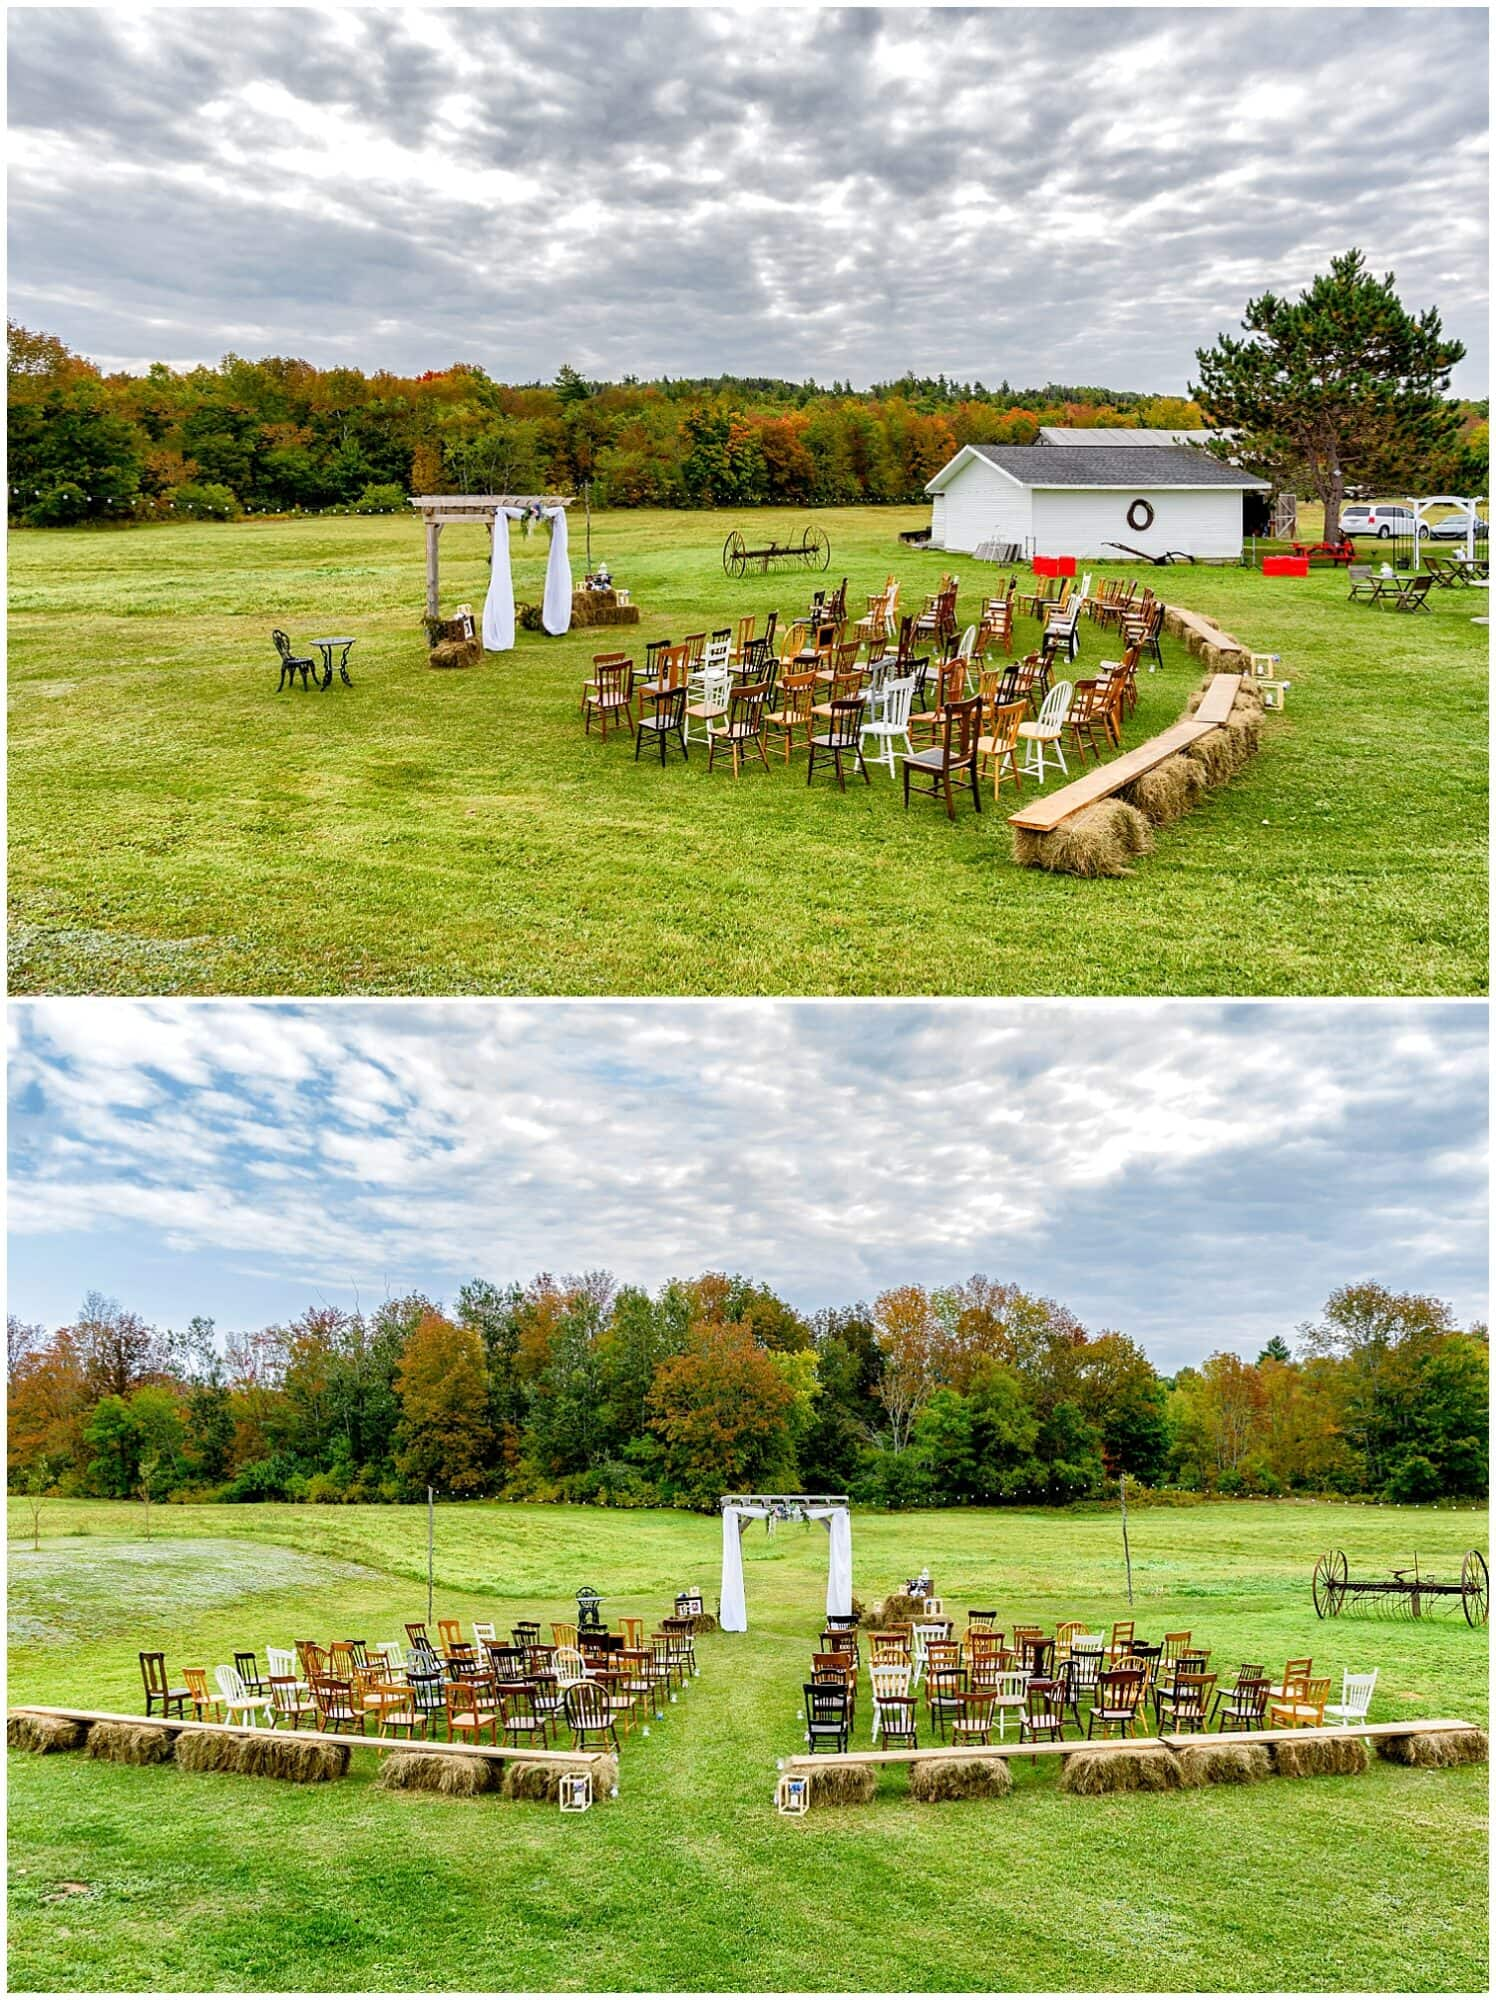 The wedding ceremony set up at the barn at Sadie Belle Farm in Hantsport NS.